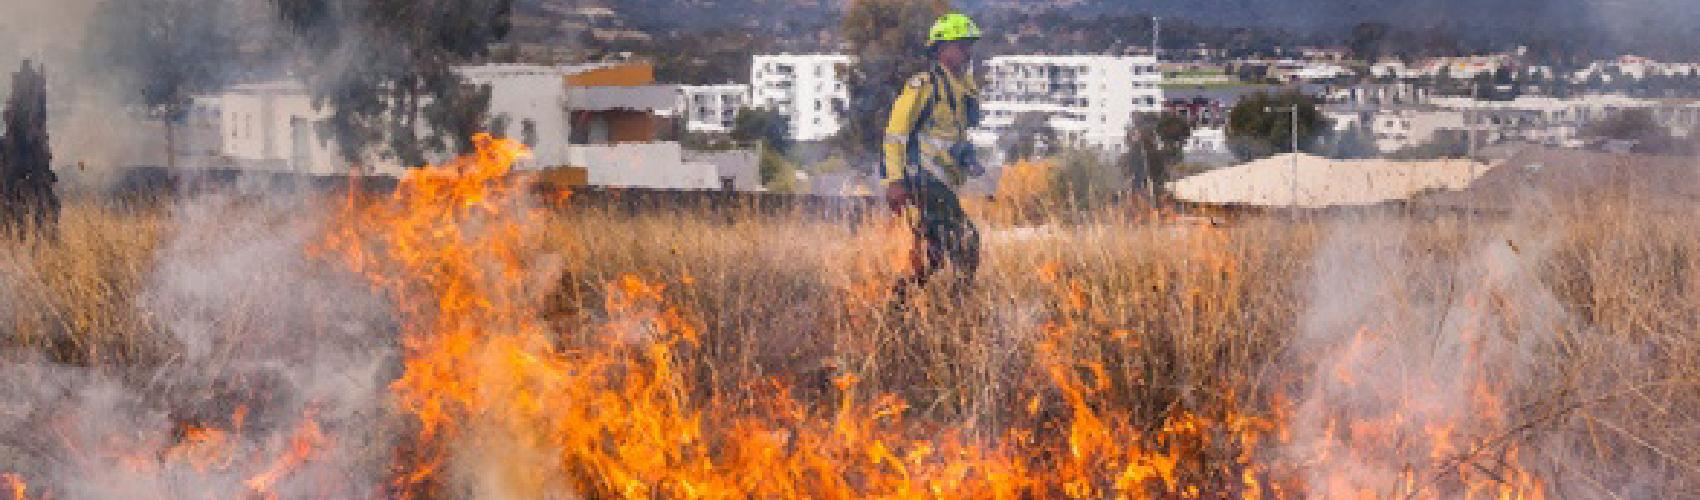 WIRADJURI MAN DEAN FREEMAN (ACT PARKS AND CONSERVATION SERVICE) AND A CULTURAL BURN IN NGUNNAWAL AND